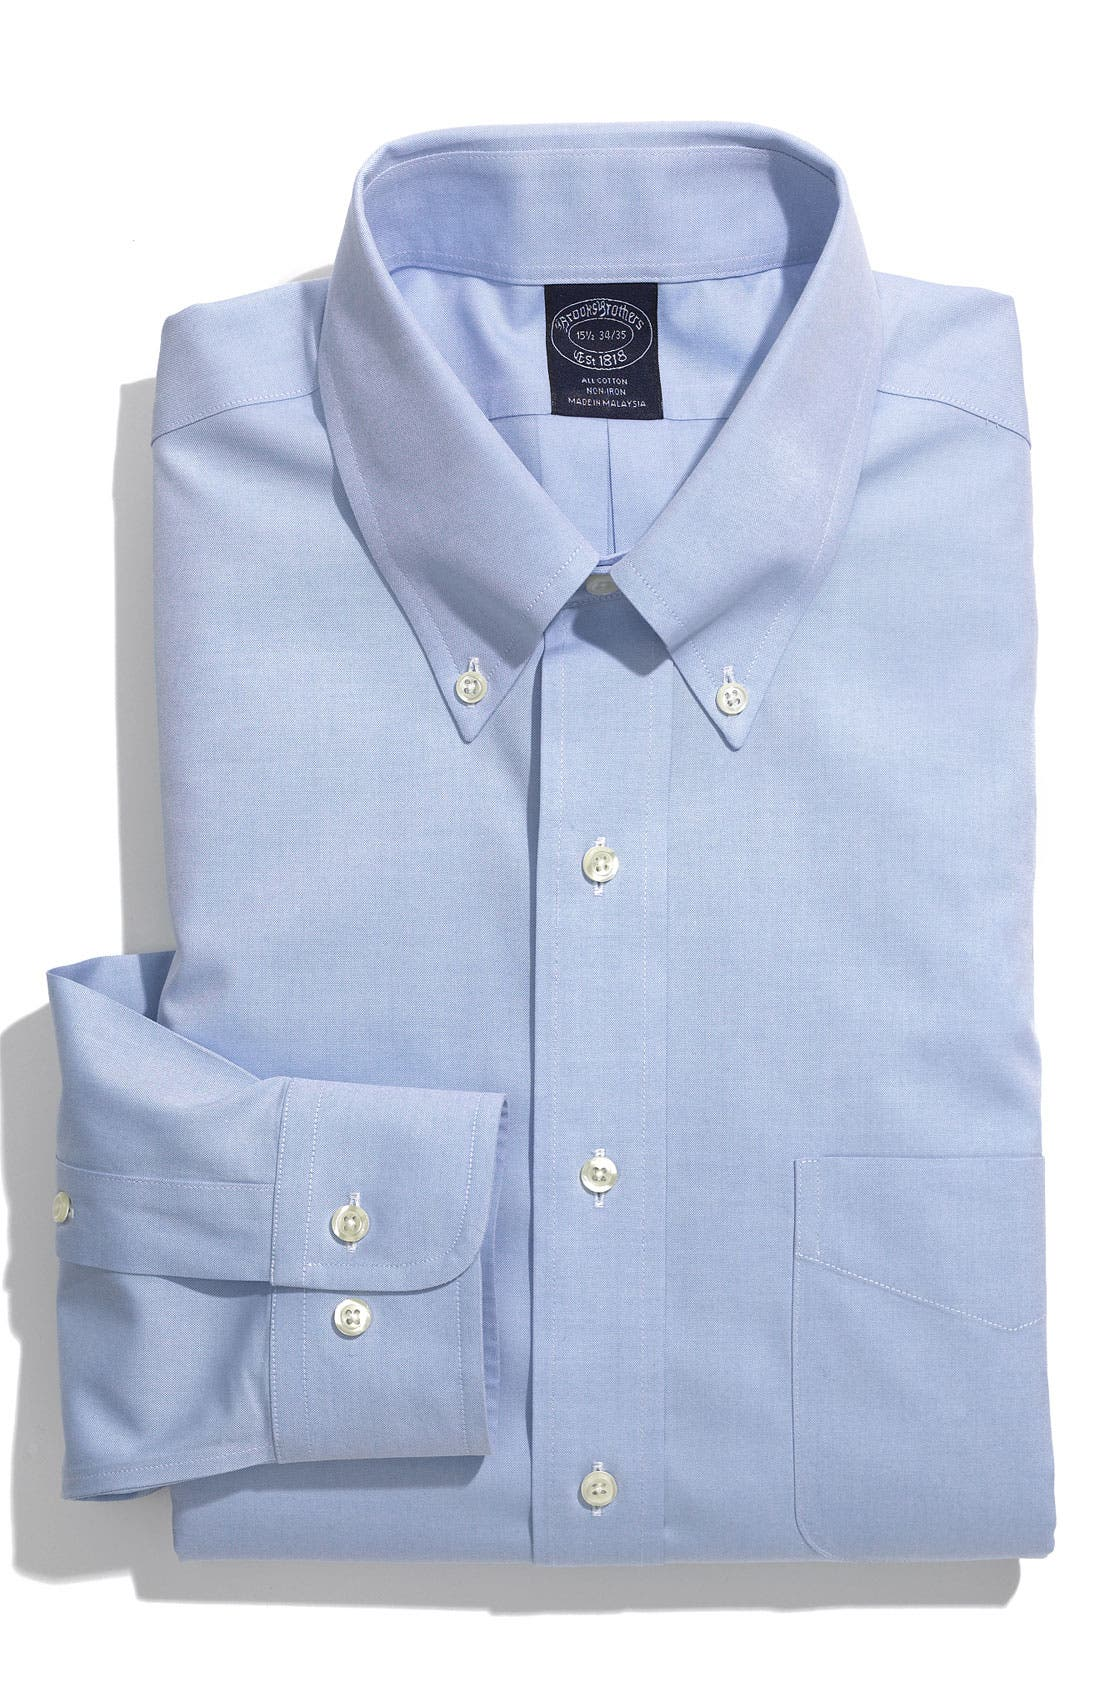 Main Image - Brooks Brothers Regular Fit Non-Iron Dress Shirt